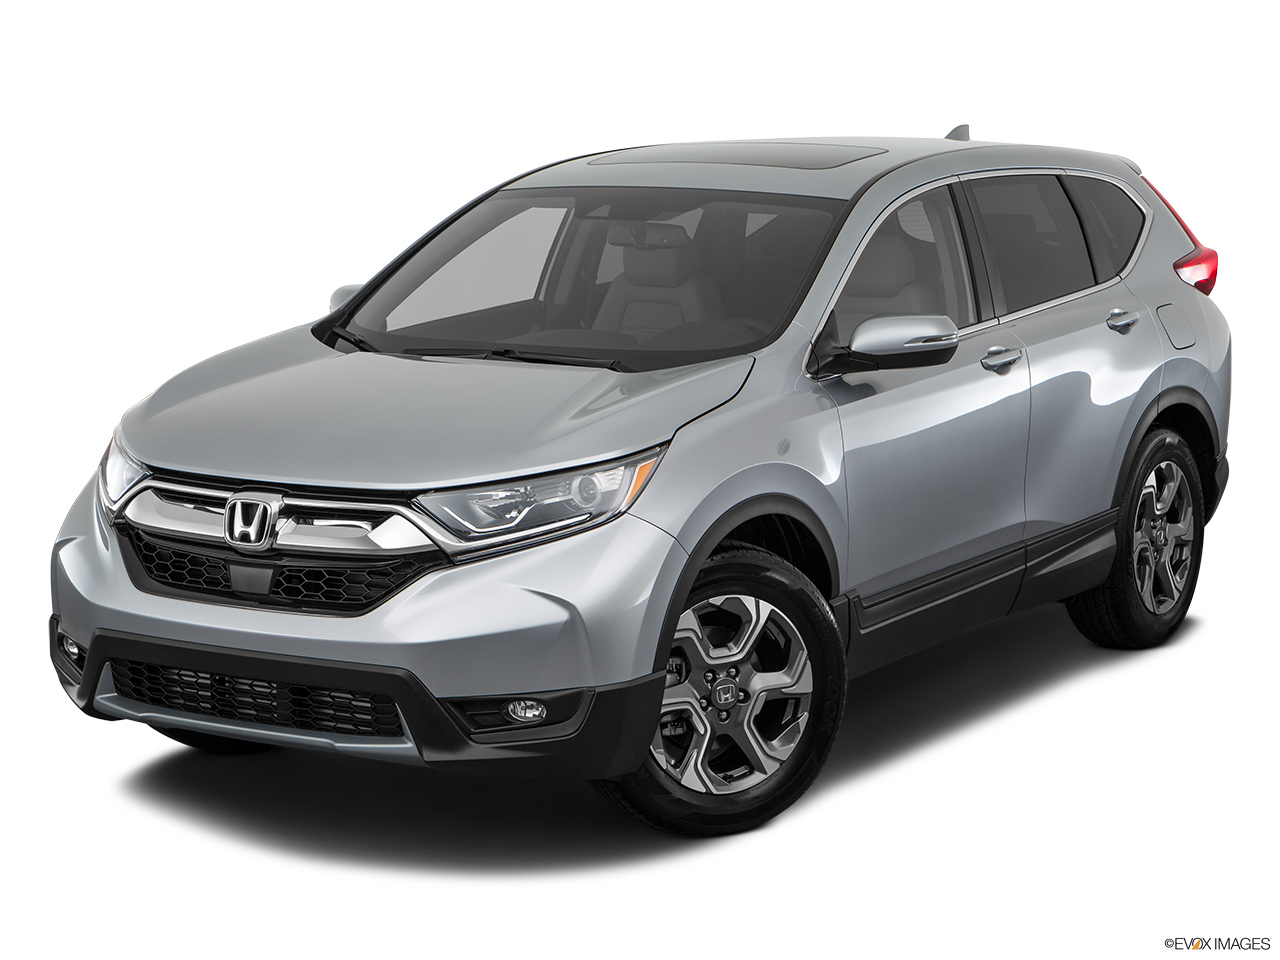 2018 honda cr v prices in bahrain gulf specs reviews for Honda crv price